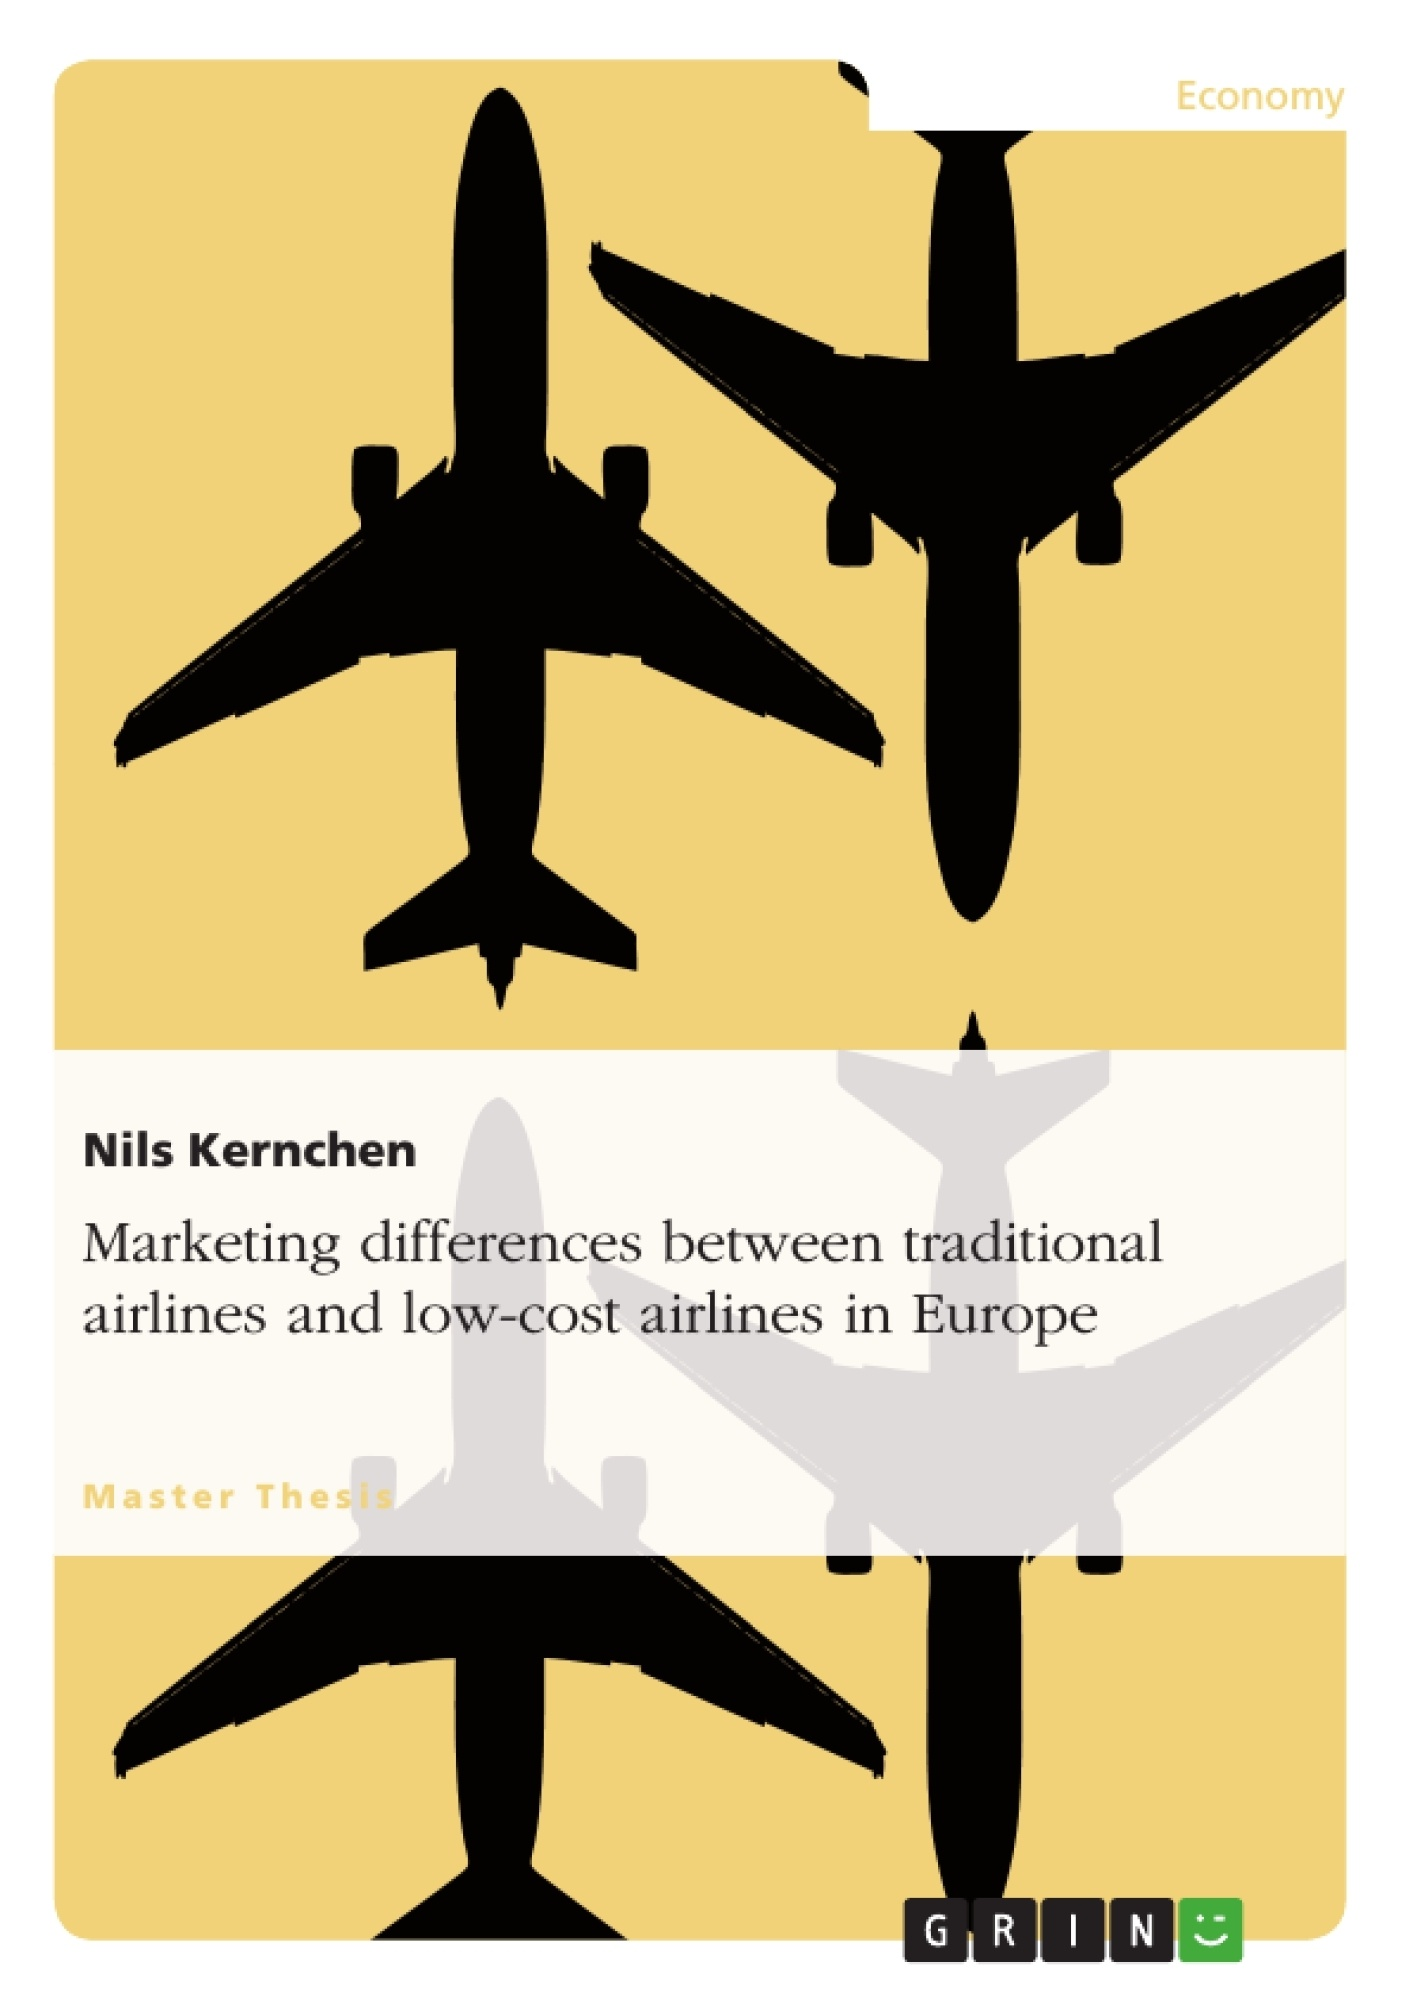 Dissertation on low cost airlines